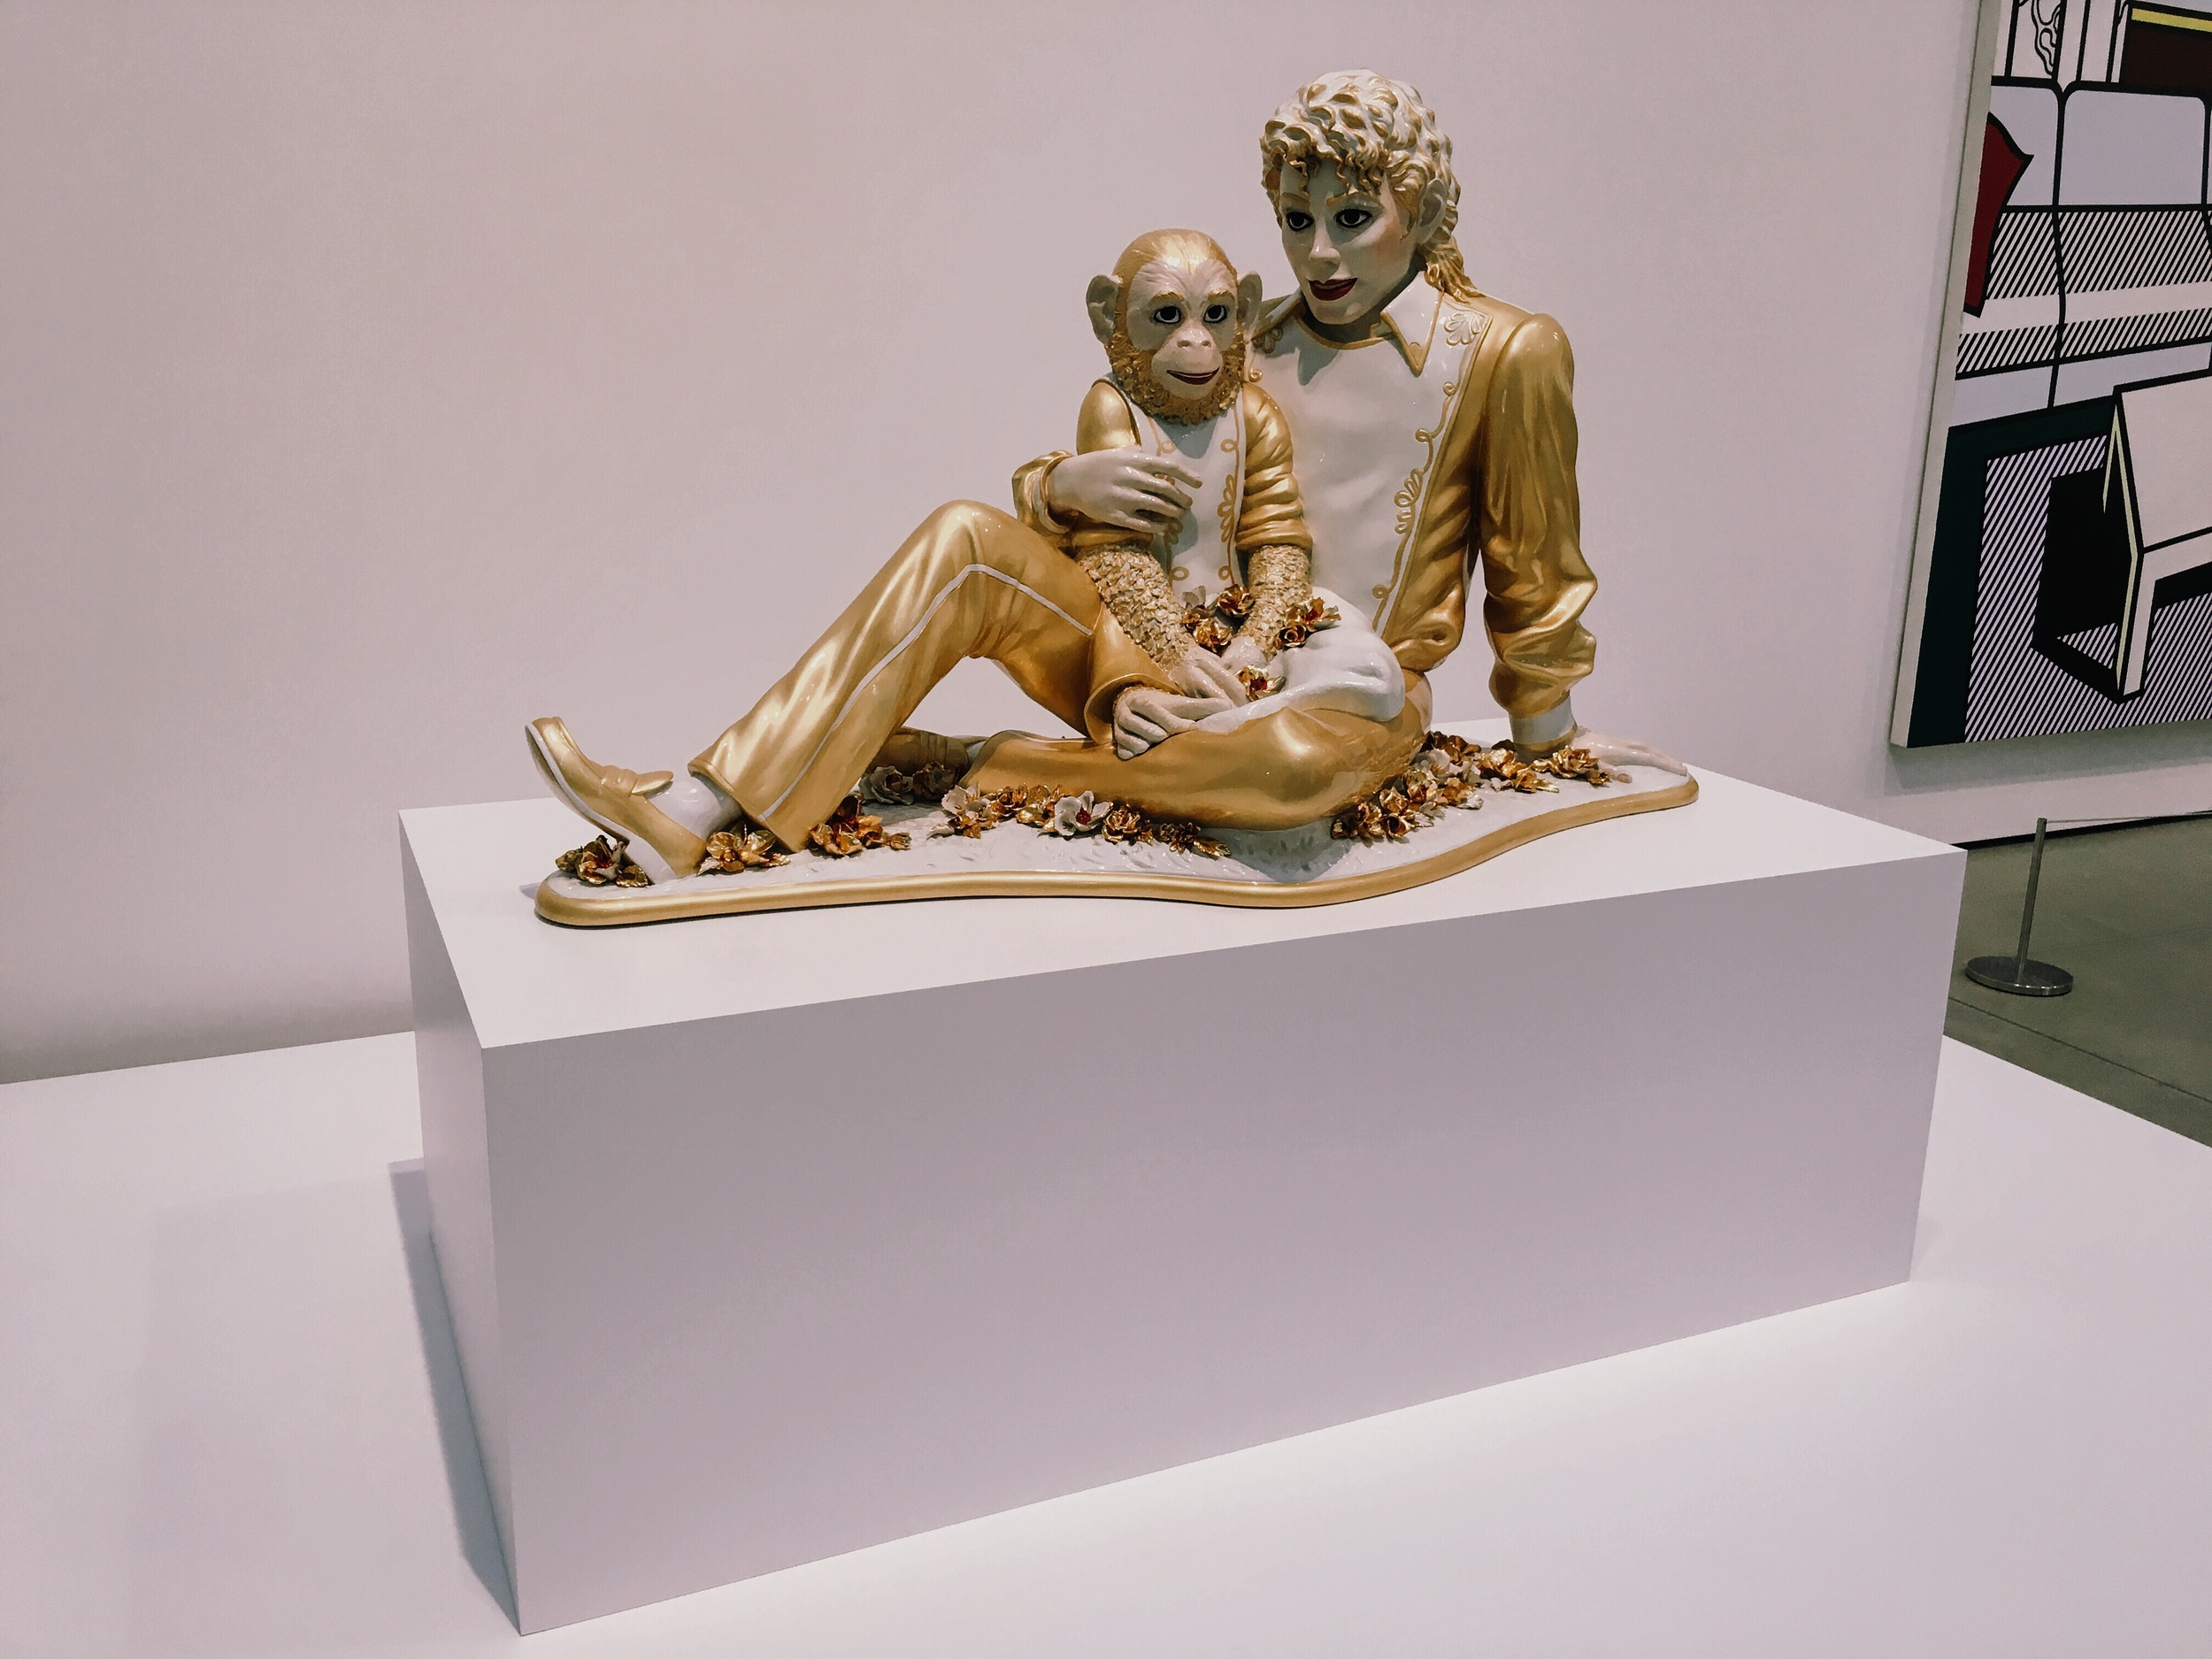 Michael Jackson and Bubbles by Jeff Koons bringing back memories of when SFMOMA first opened